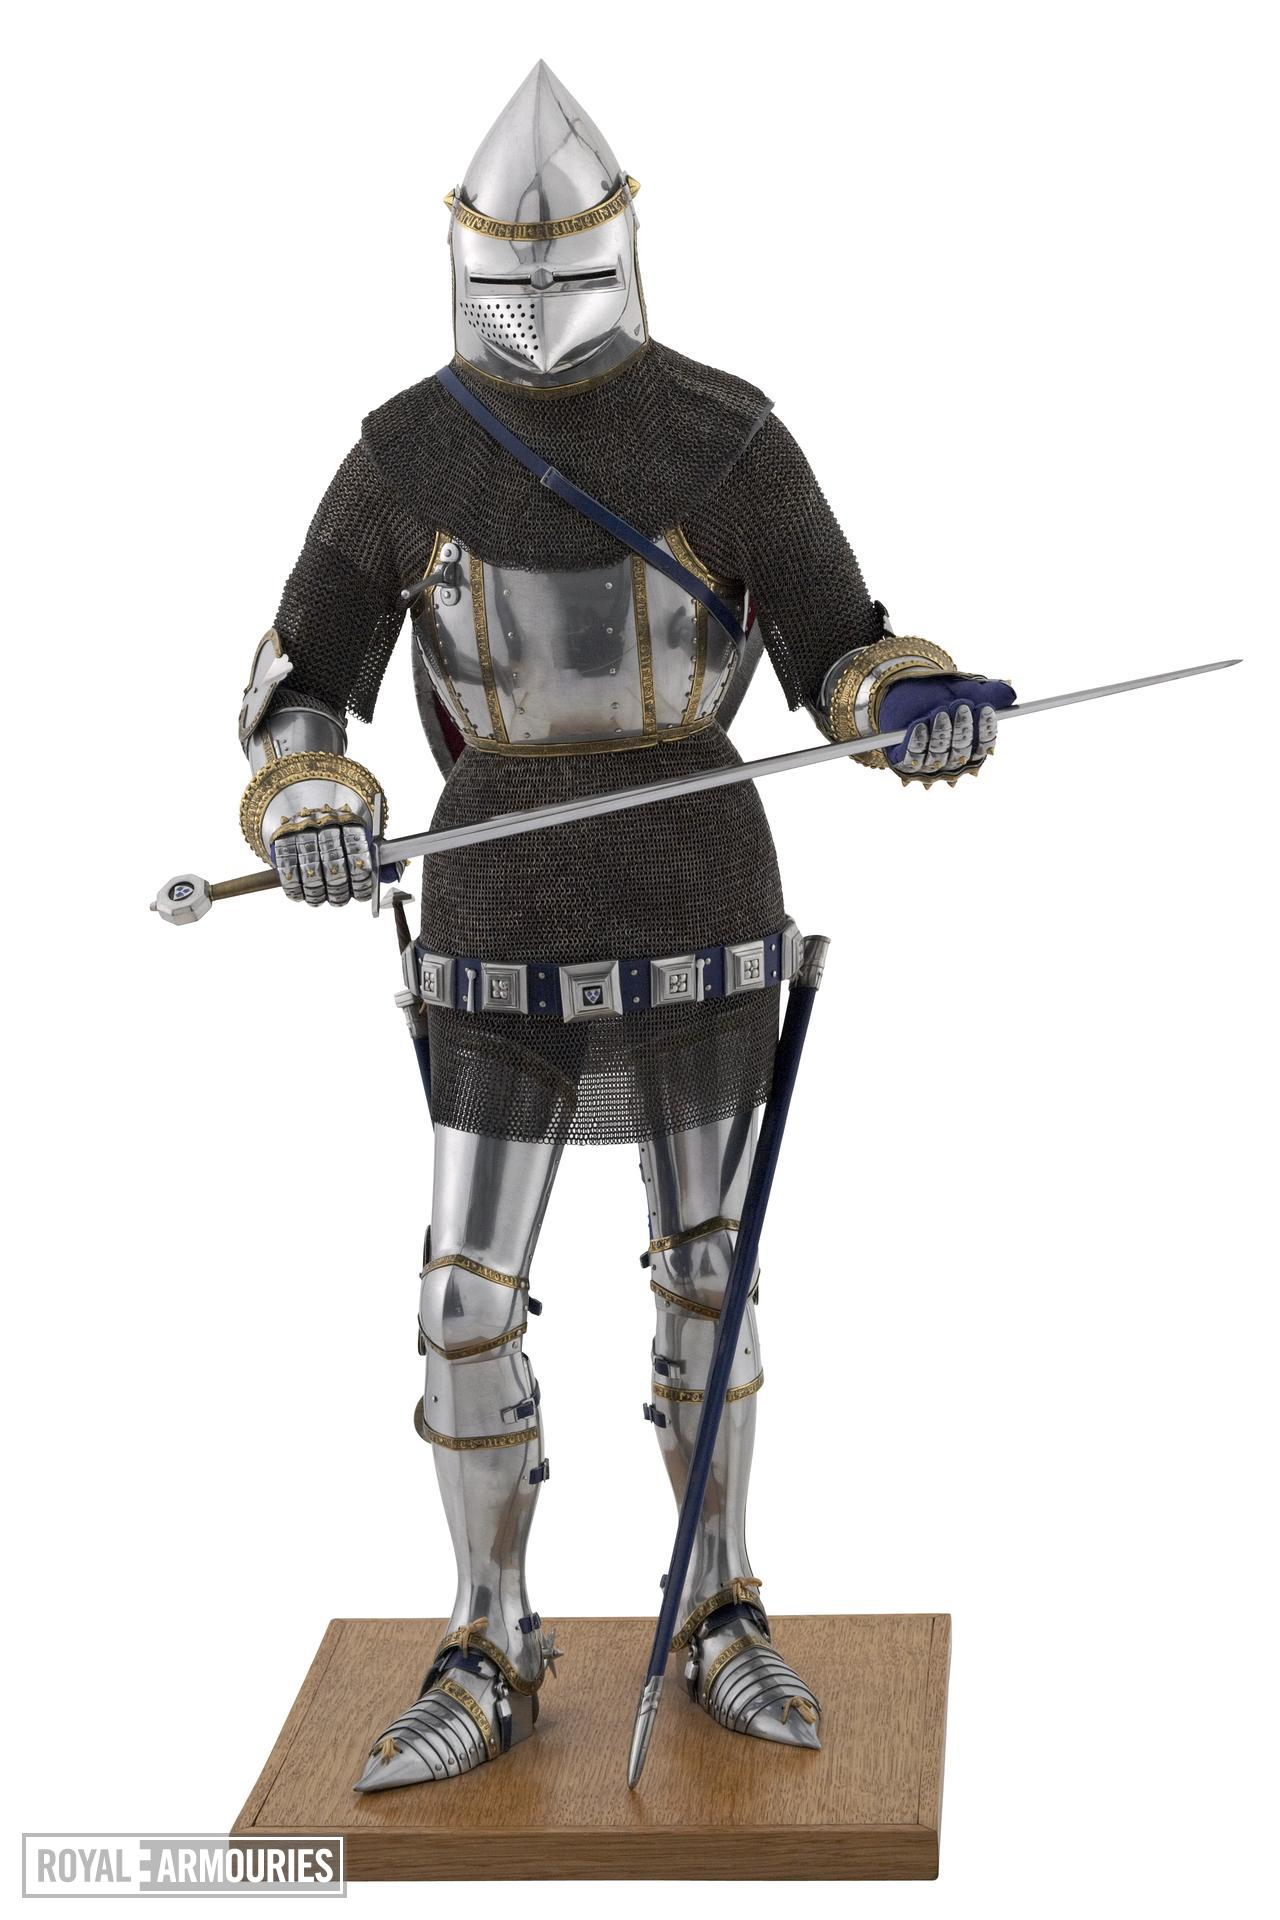 Model of a man at arms in Italian armour of the late 14th century. British, 1975 (II.333)